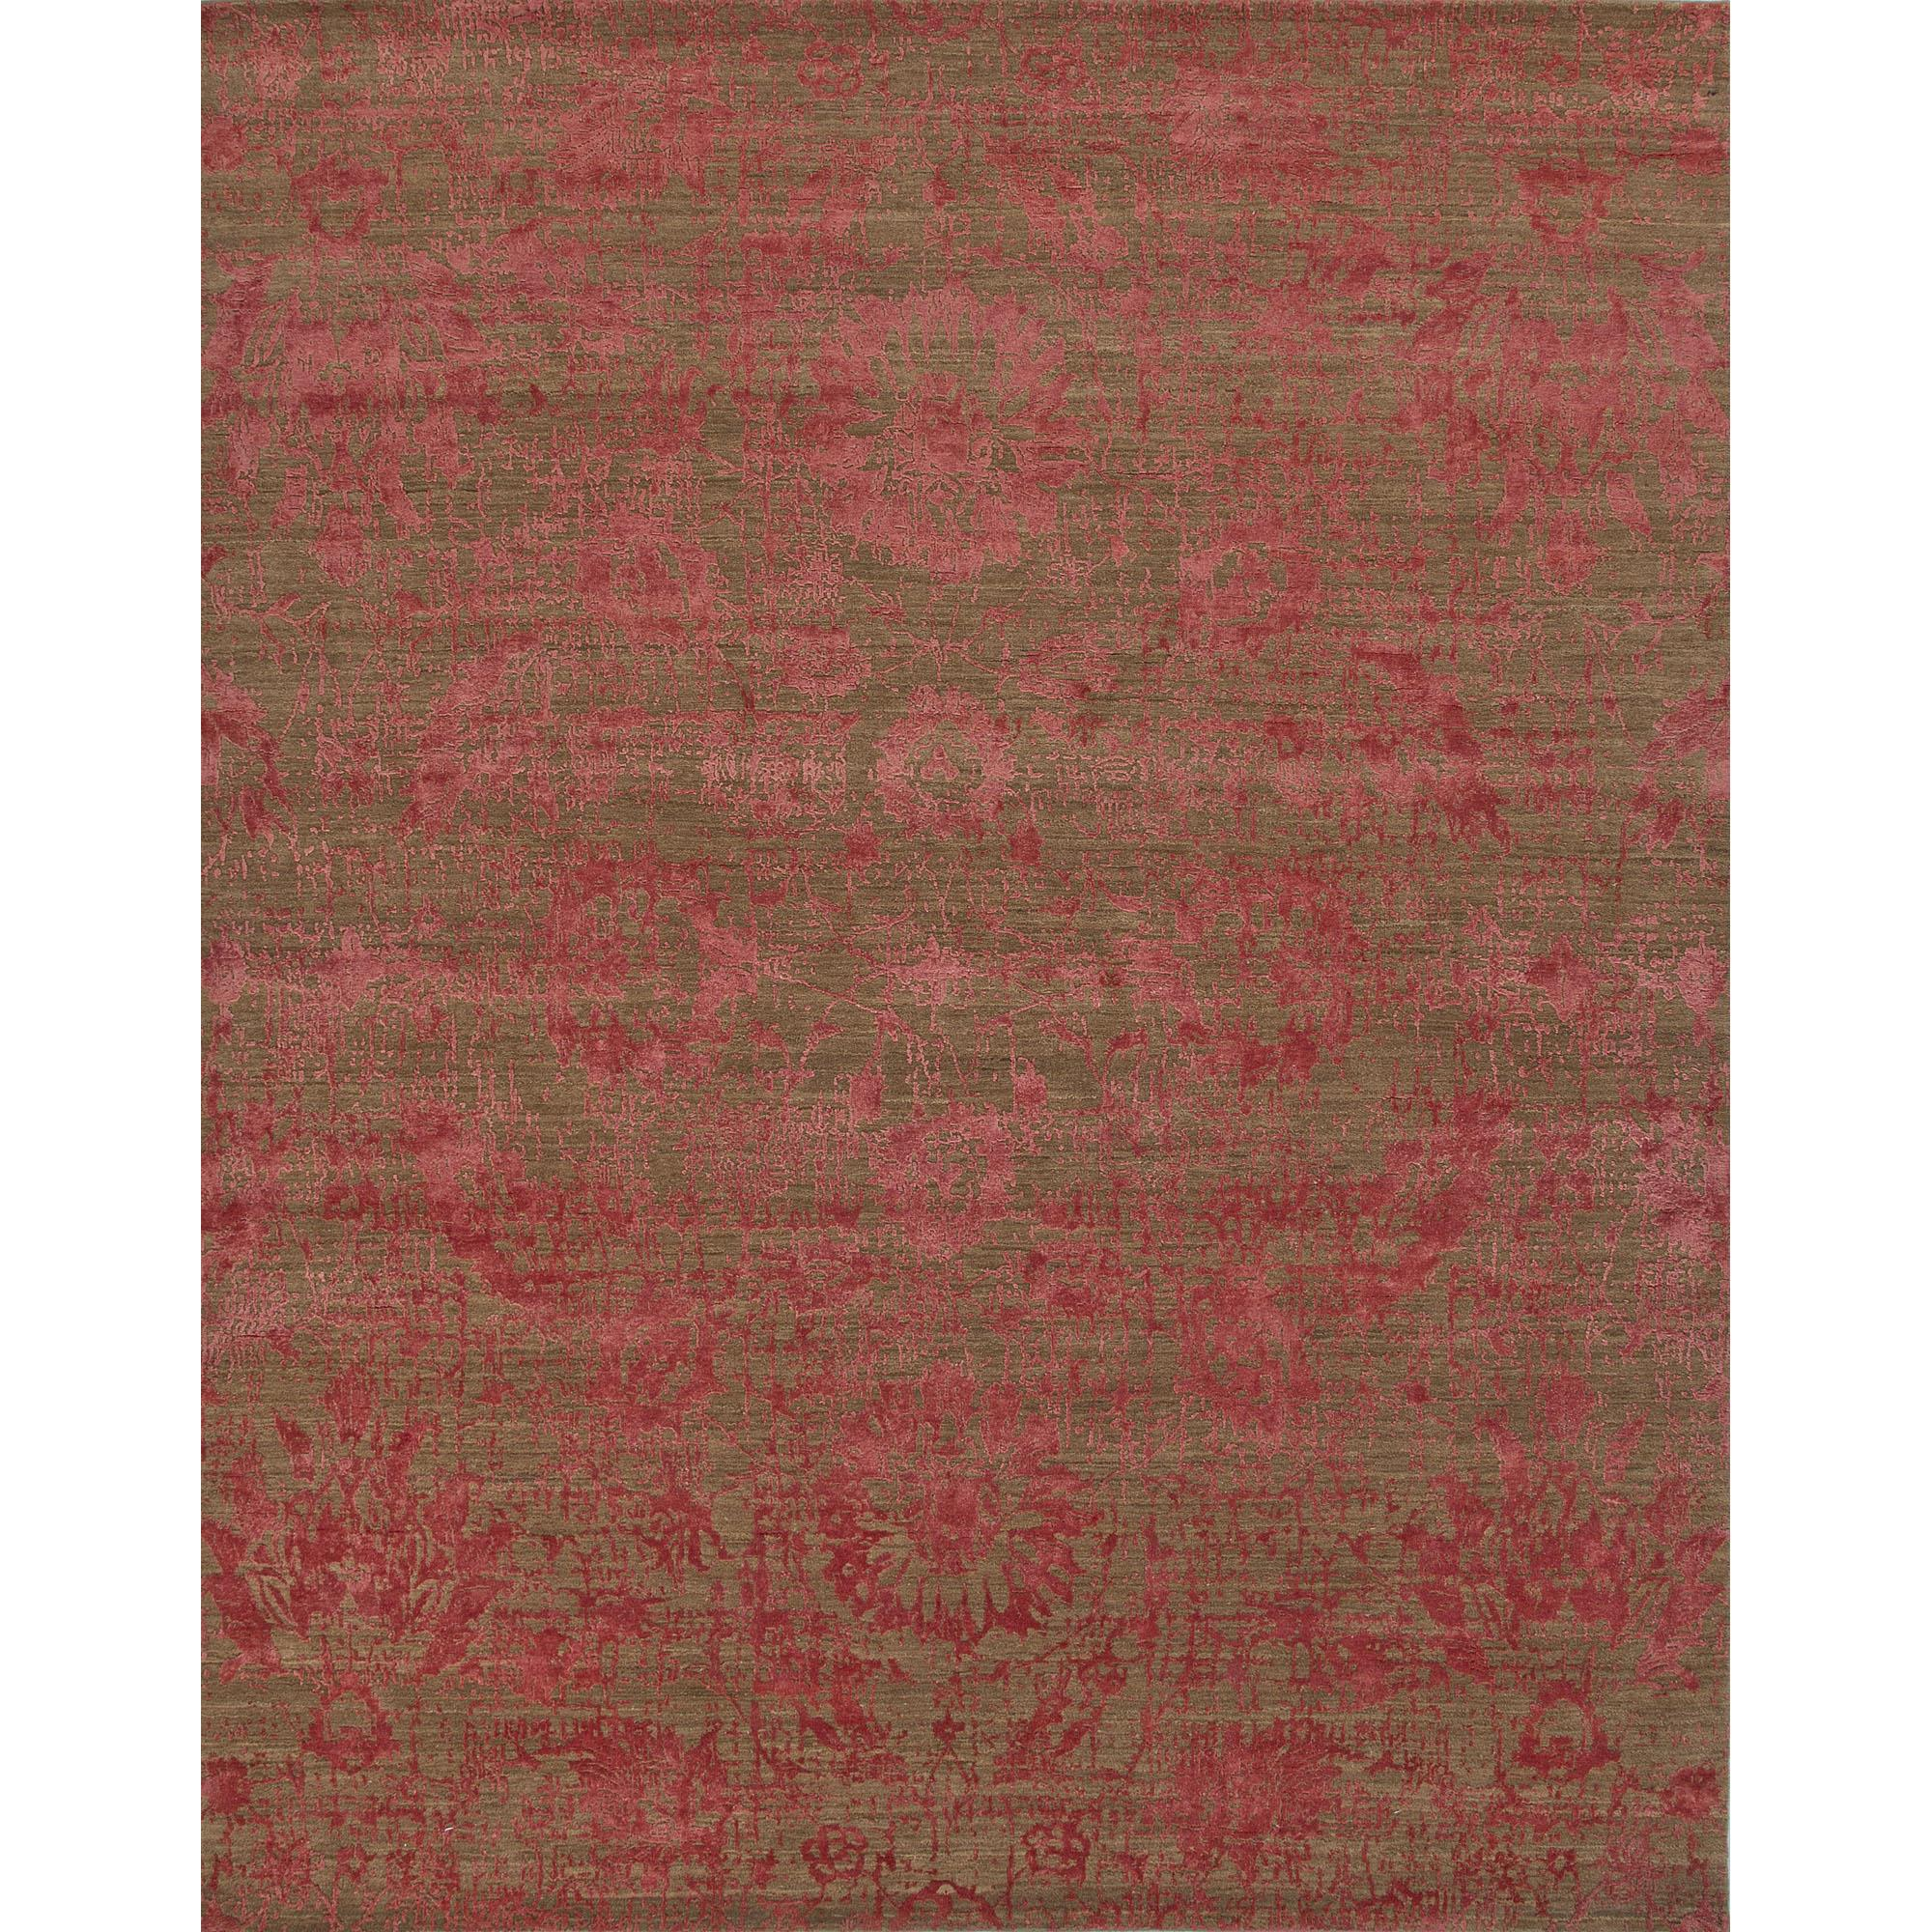 JAIPUR Rugs Chaos Theory By Kavi 9 x 12 Rug - Item Number: RUG119223